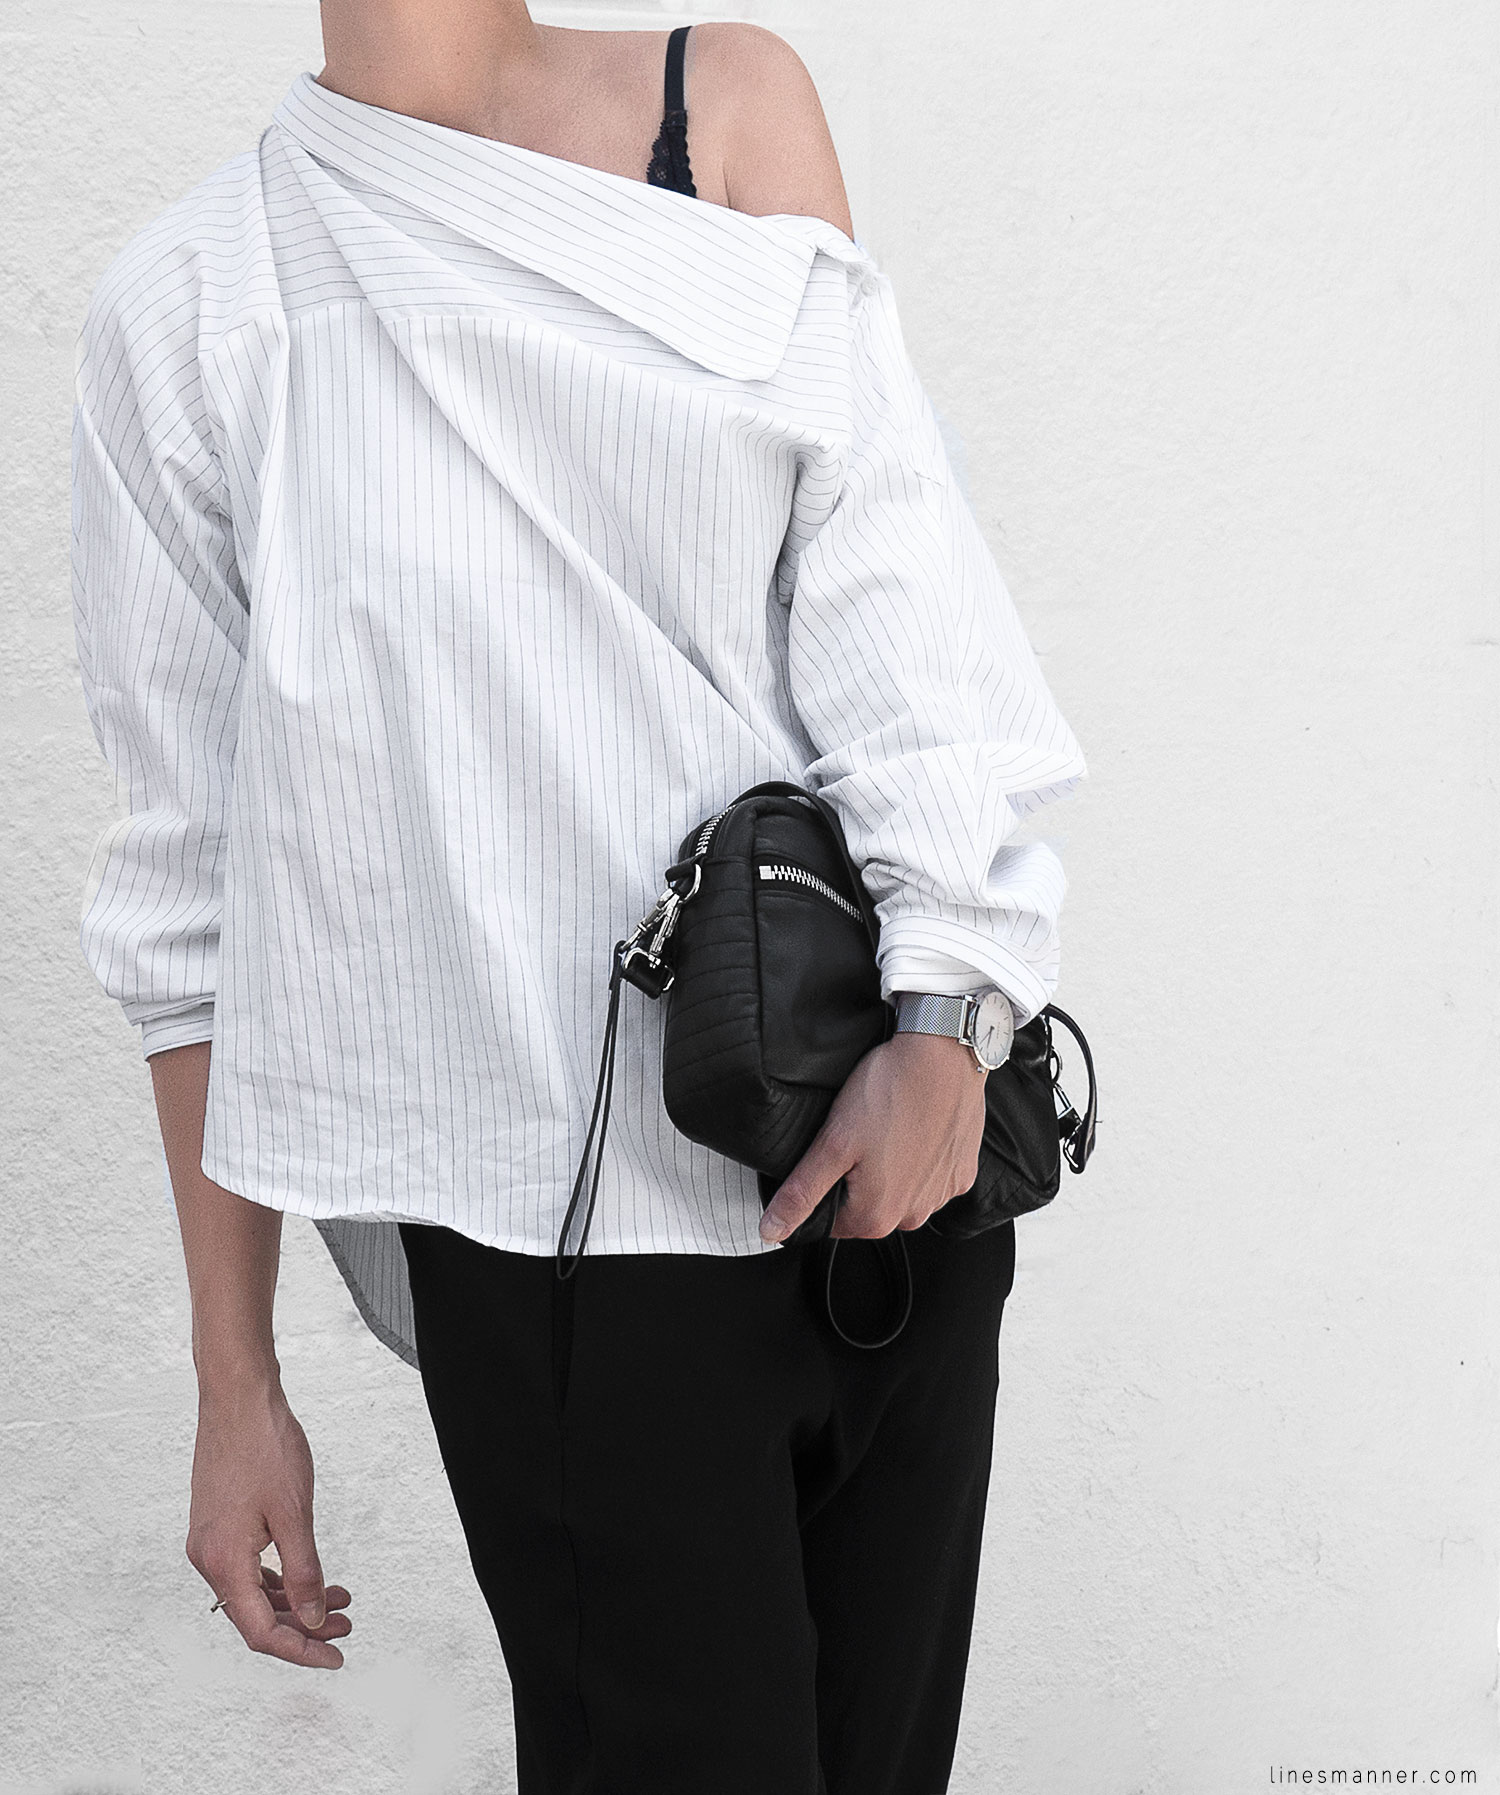 Lines-Manner-Simplicity-Off_shoulder-Monochrome-Noway_Monday-Details-Edgy6Backward-Sleek Statement_piece-Pinstripe-Business-Shirt-Minimal-Essentials-Outfit-Fashion-Minimal_fashion-Slides-Everlane-6